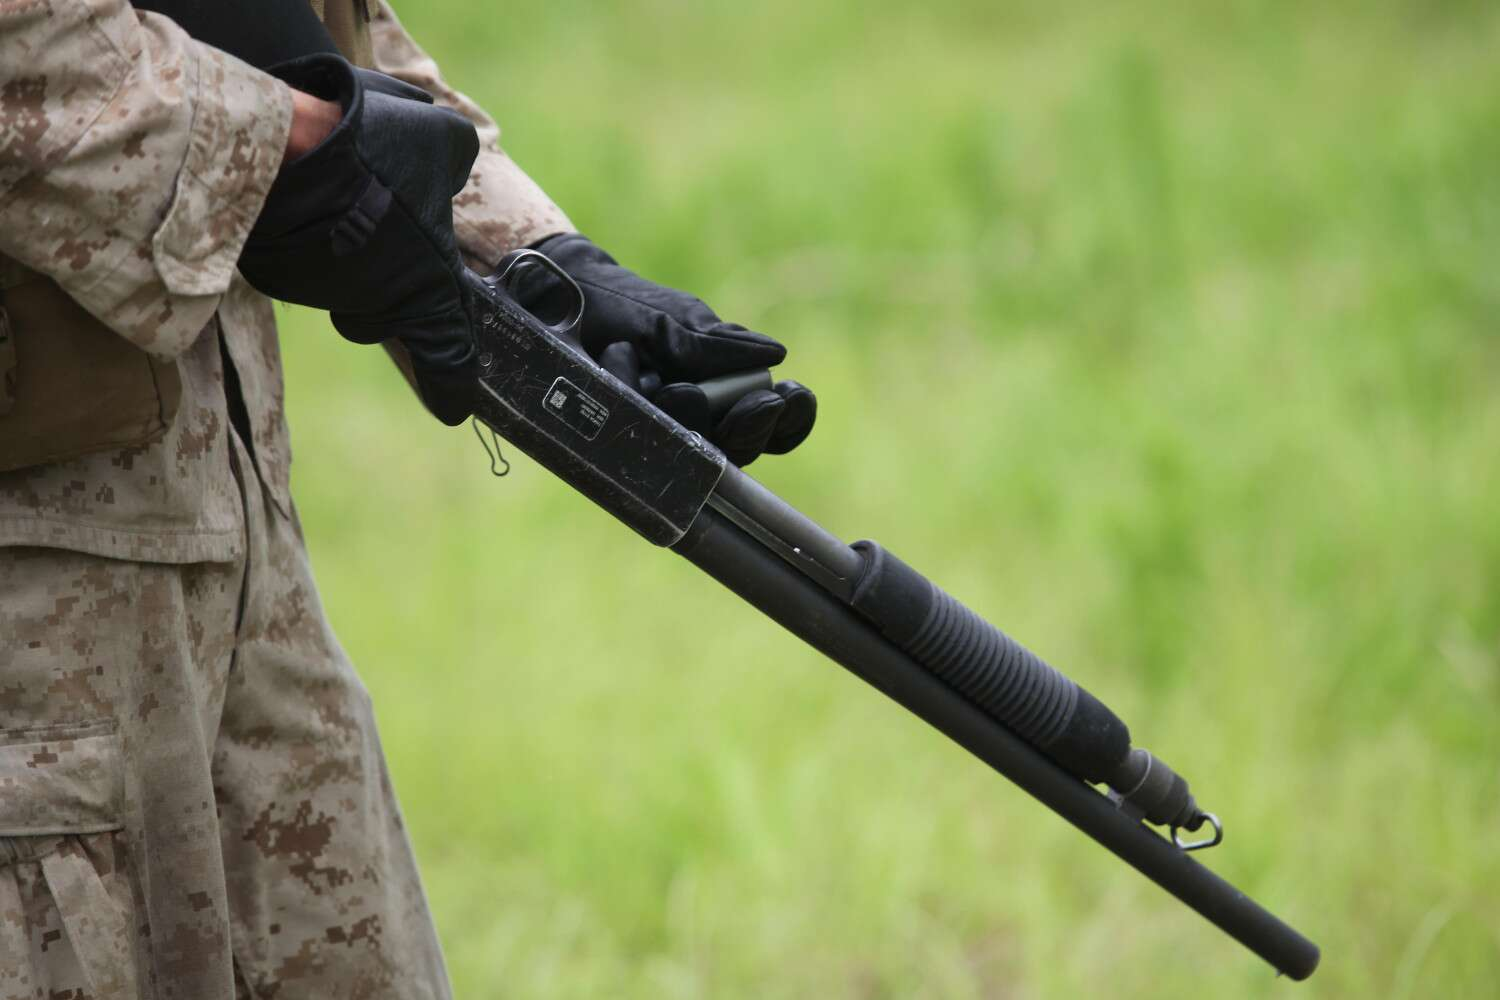 Check Out The Marine Corps Fearsome Looking Upgraded Shotguns The